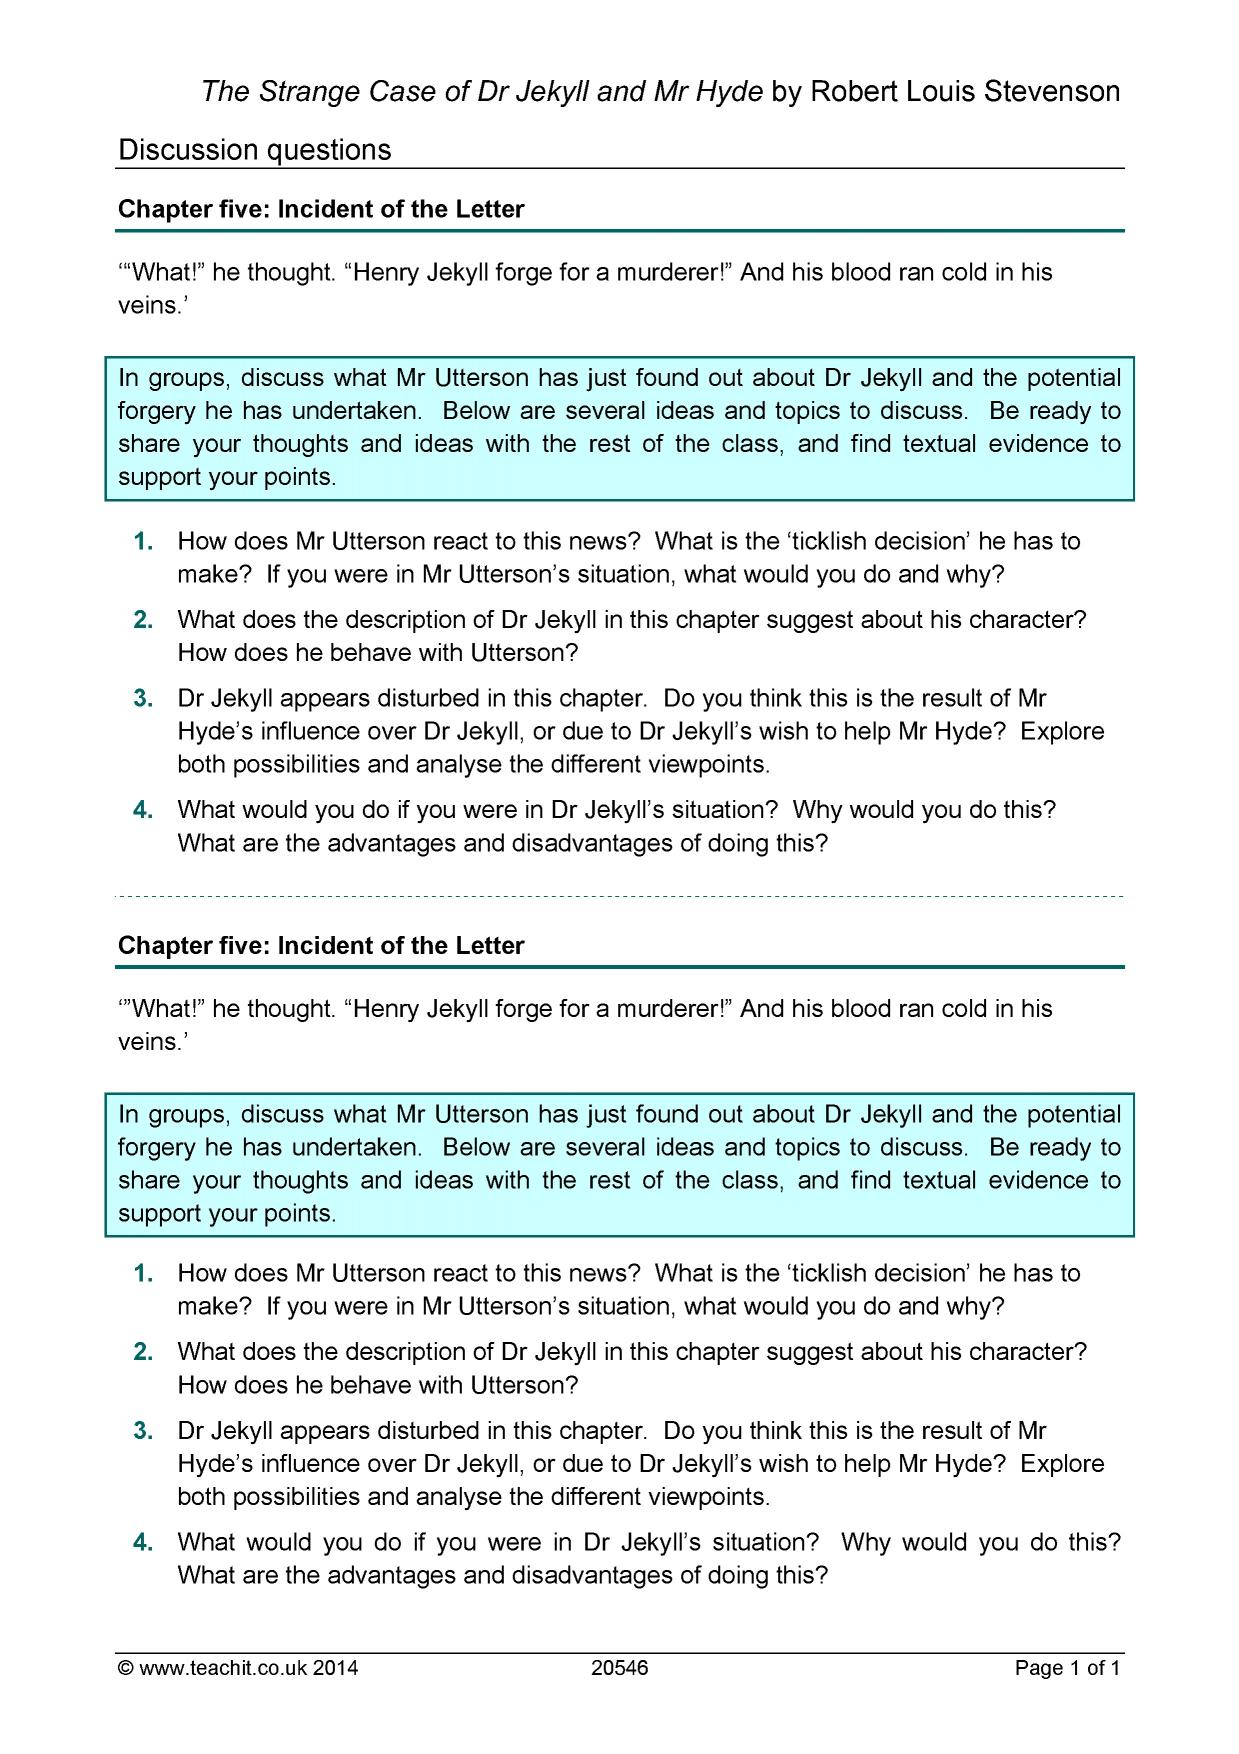 lord of the flies essay questions response essay topics the conch  essay questions on dr jekyll and mr hyde dr jekyll and mr hyde essay questions gradesaver lord of the flies